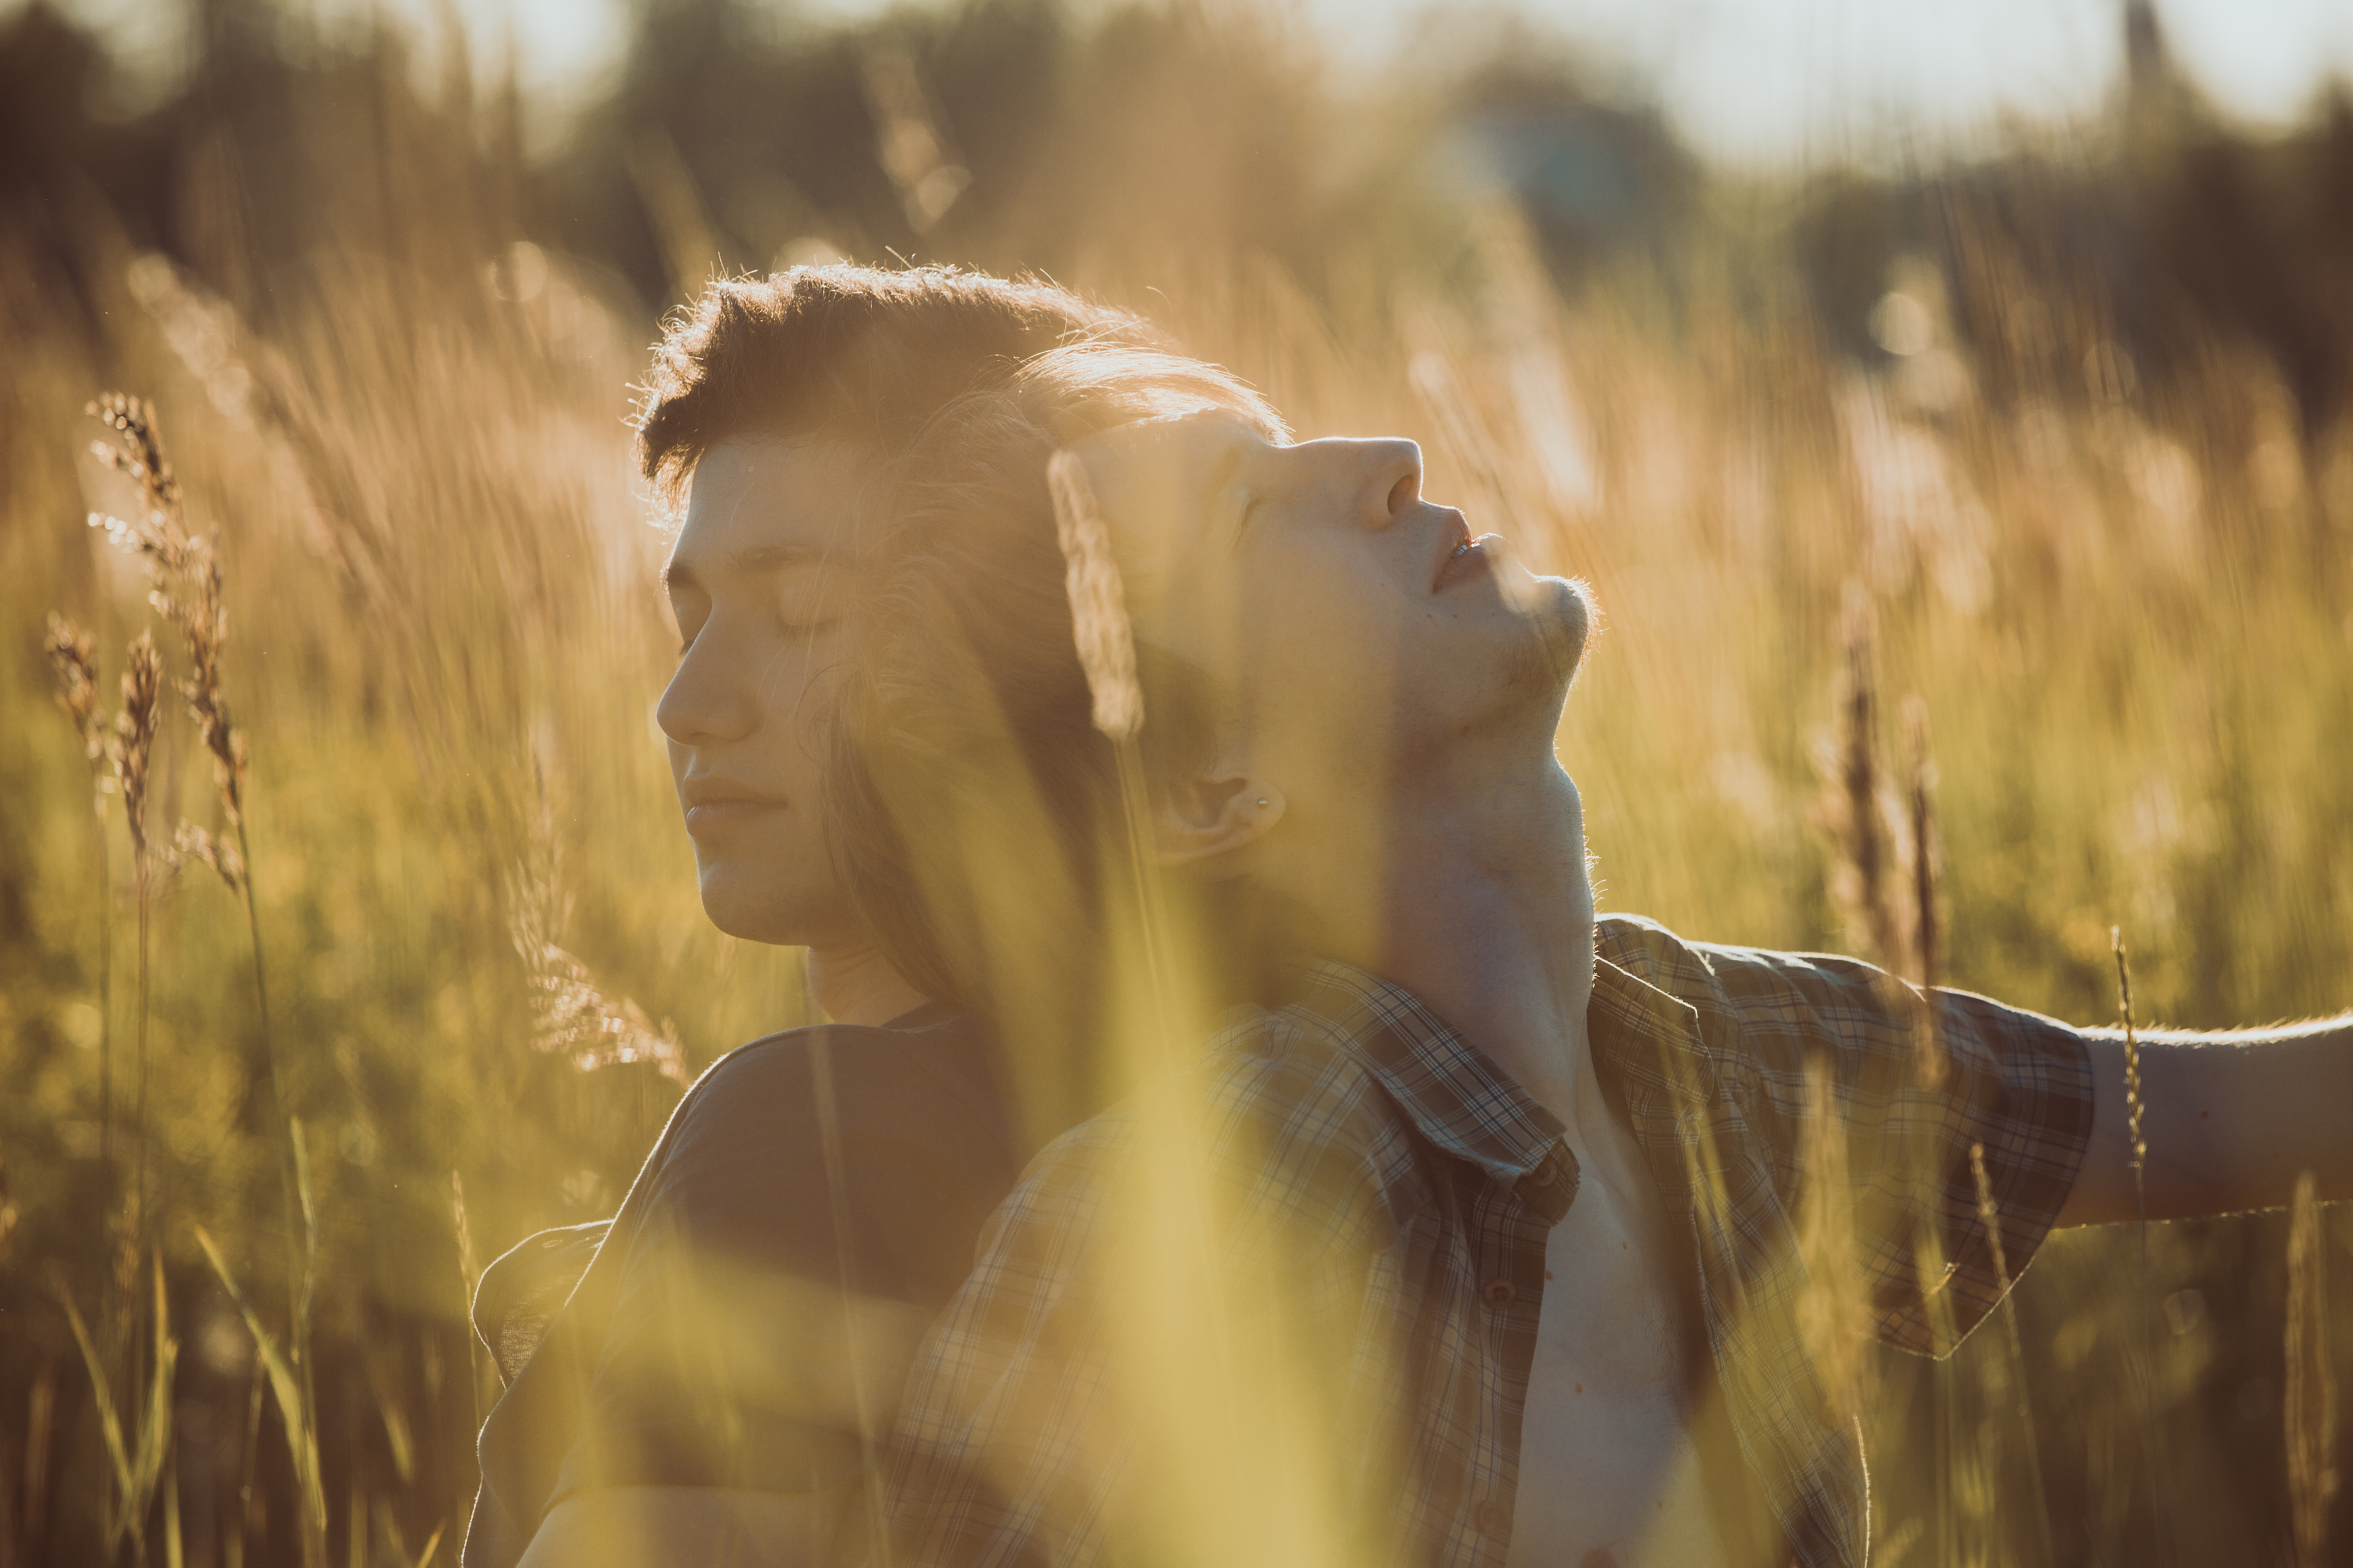 The 7 Secret Signs to Soulmate Success - Michele Knight